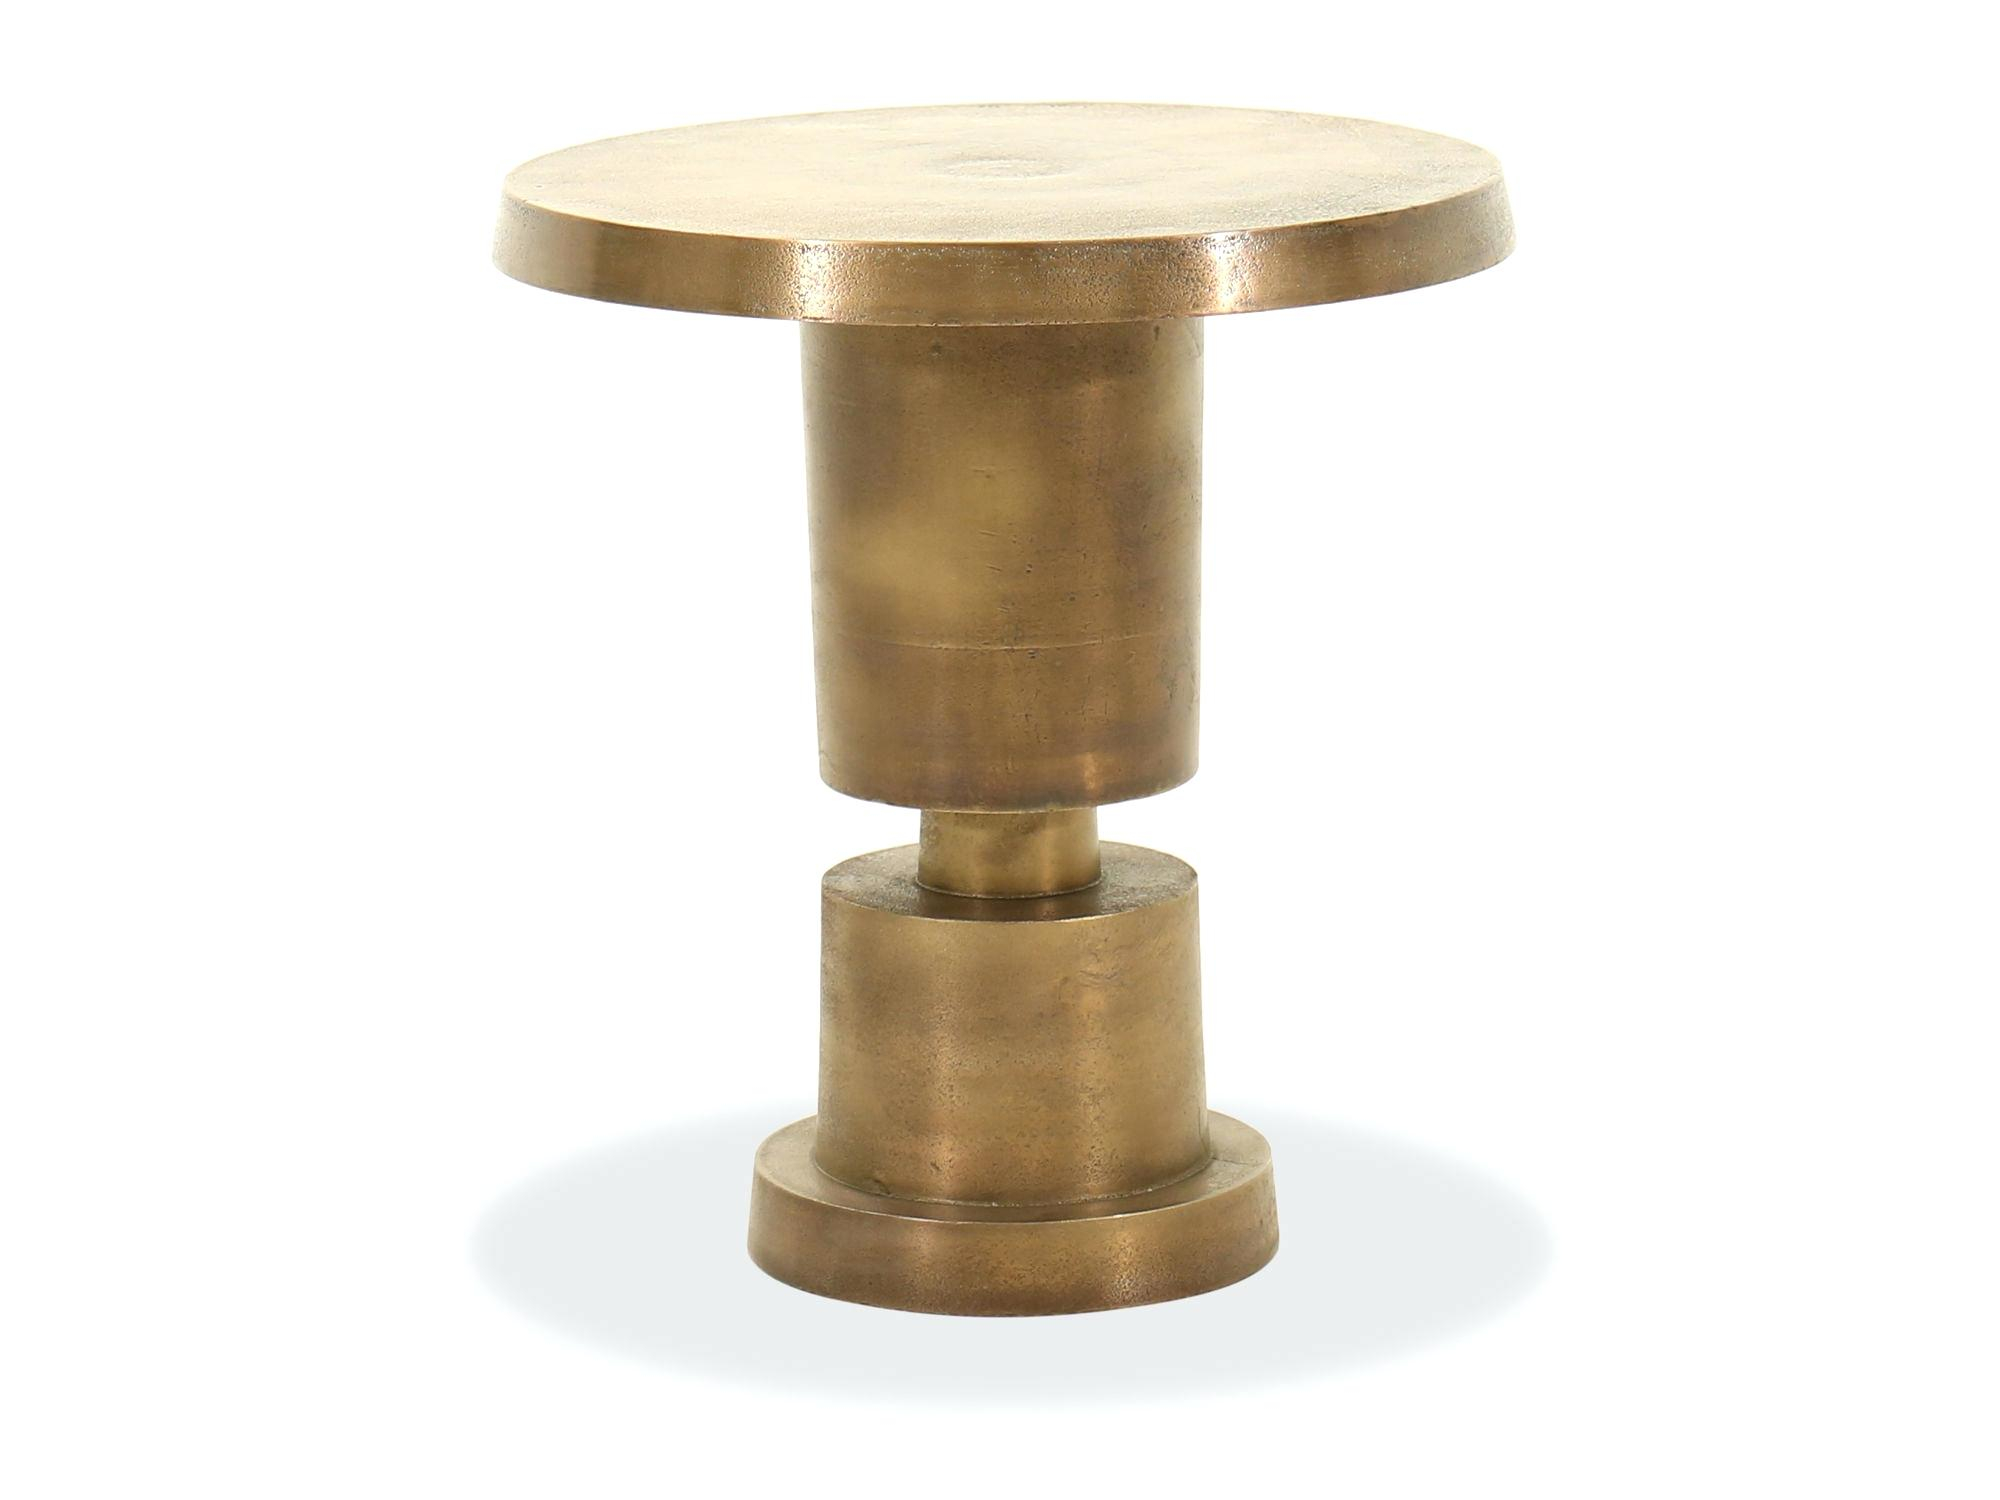 gold cala hammered drum accent table home round draper drums and conical base aluminum brothers furniture kitchen marvelous cylindrical full size console with cabinets throne seat